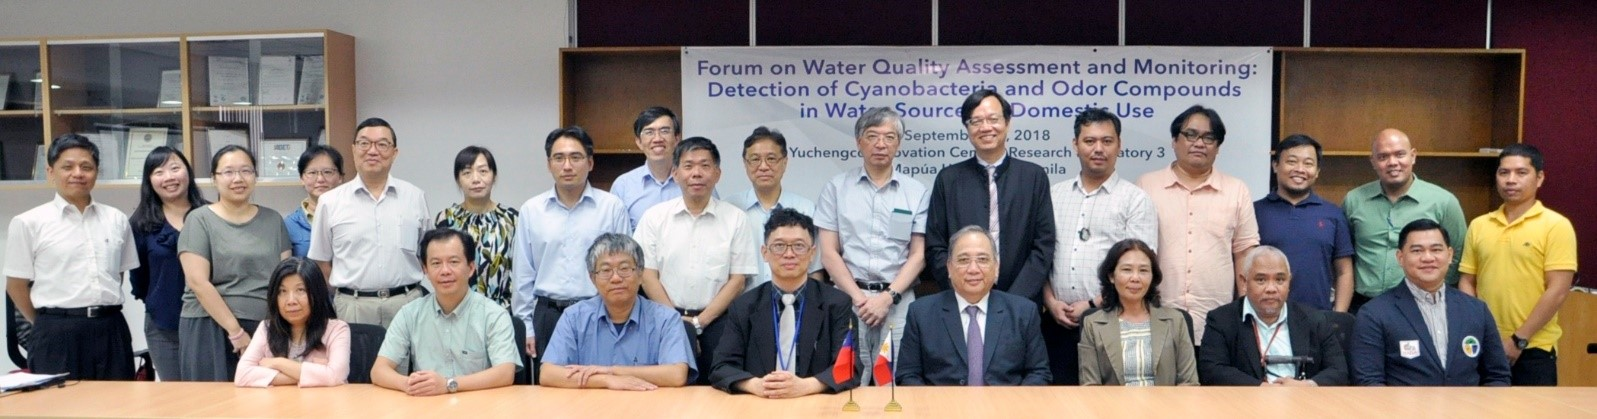 The group photo of forum on water quality assessment and monitoring.